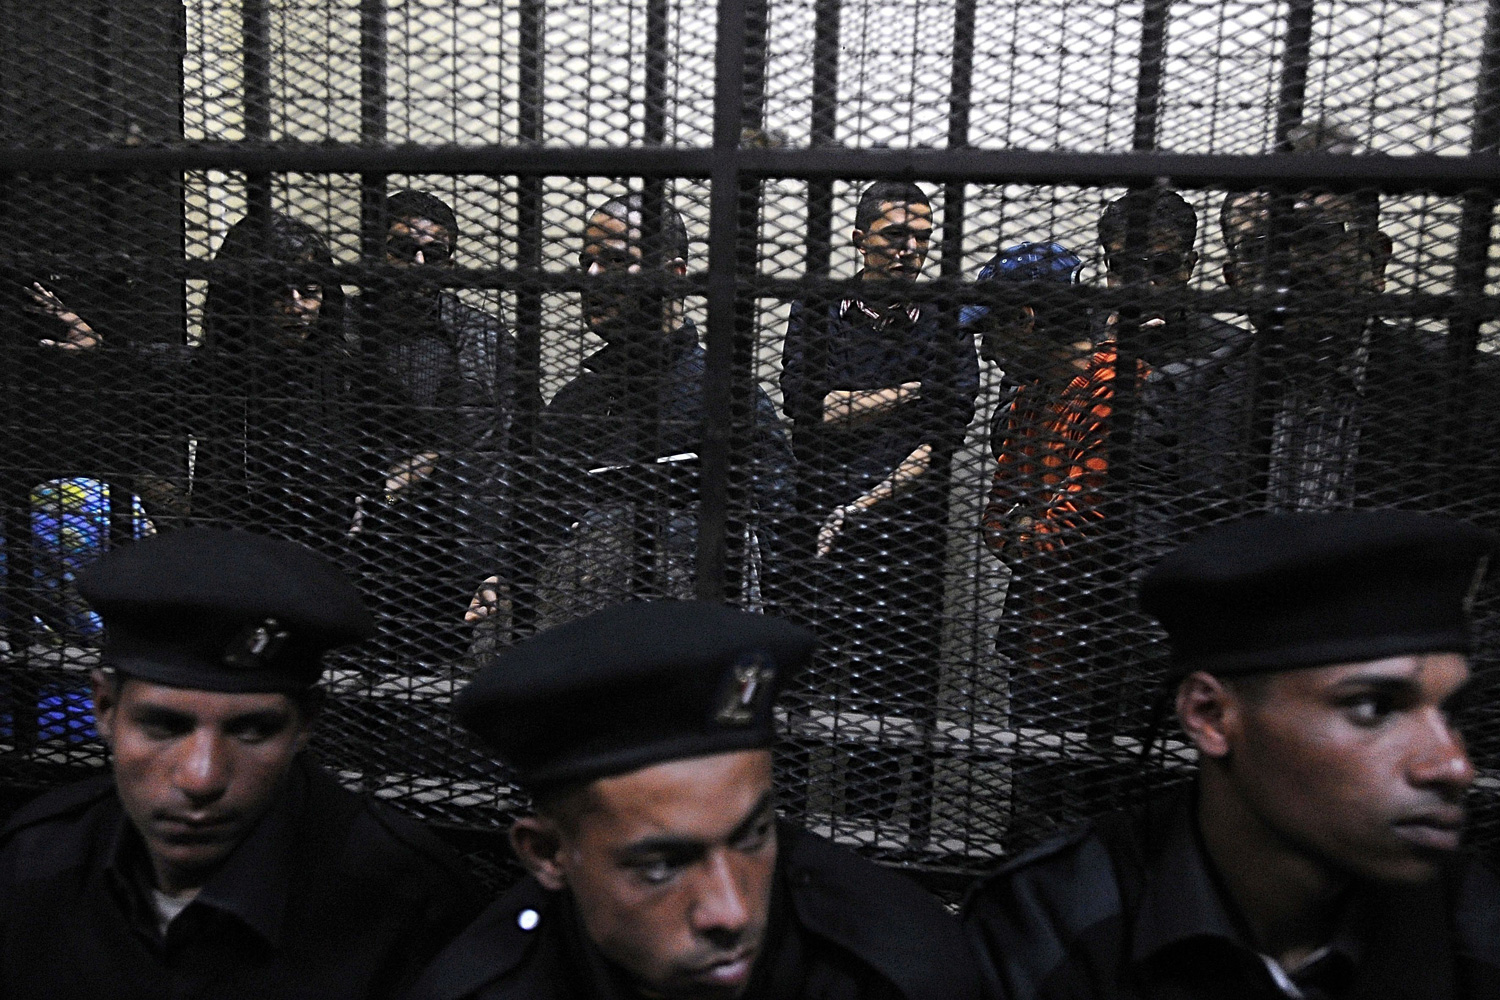 Feb. 26, 2012. Defendants accused of working for unlicensed non-governmental organizations and receiving illegal foreign funds stand in a cage during the opening of their trial in Cairo.